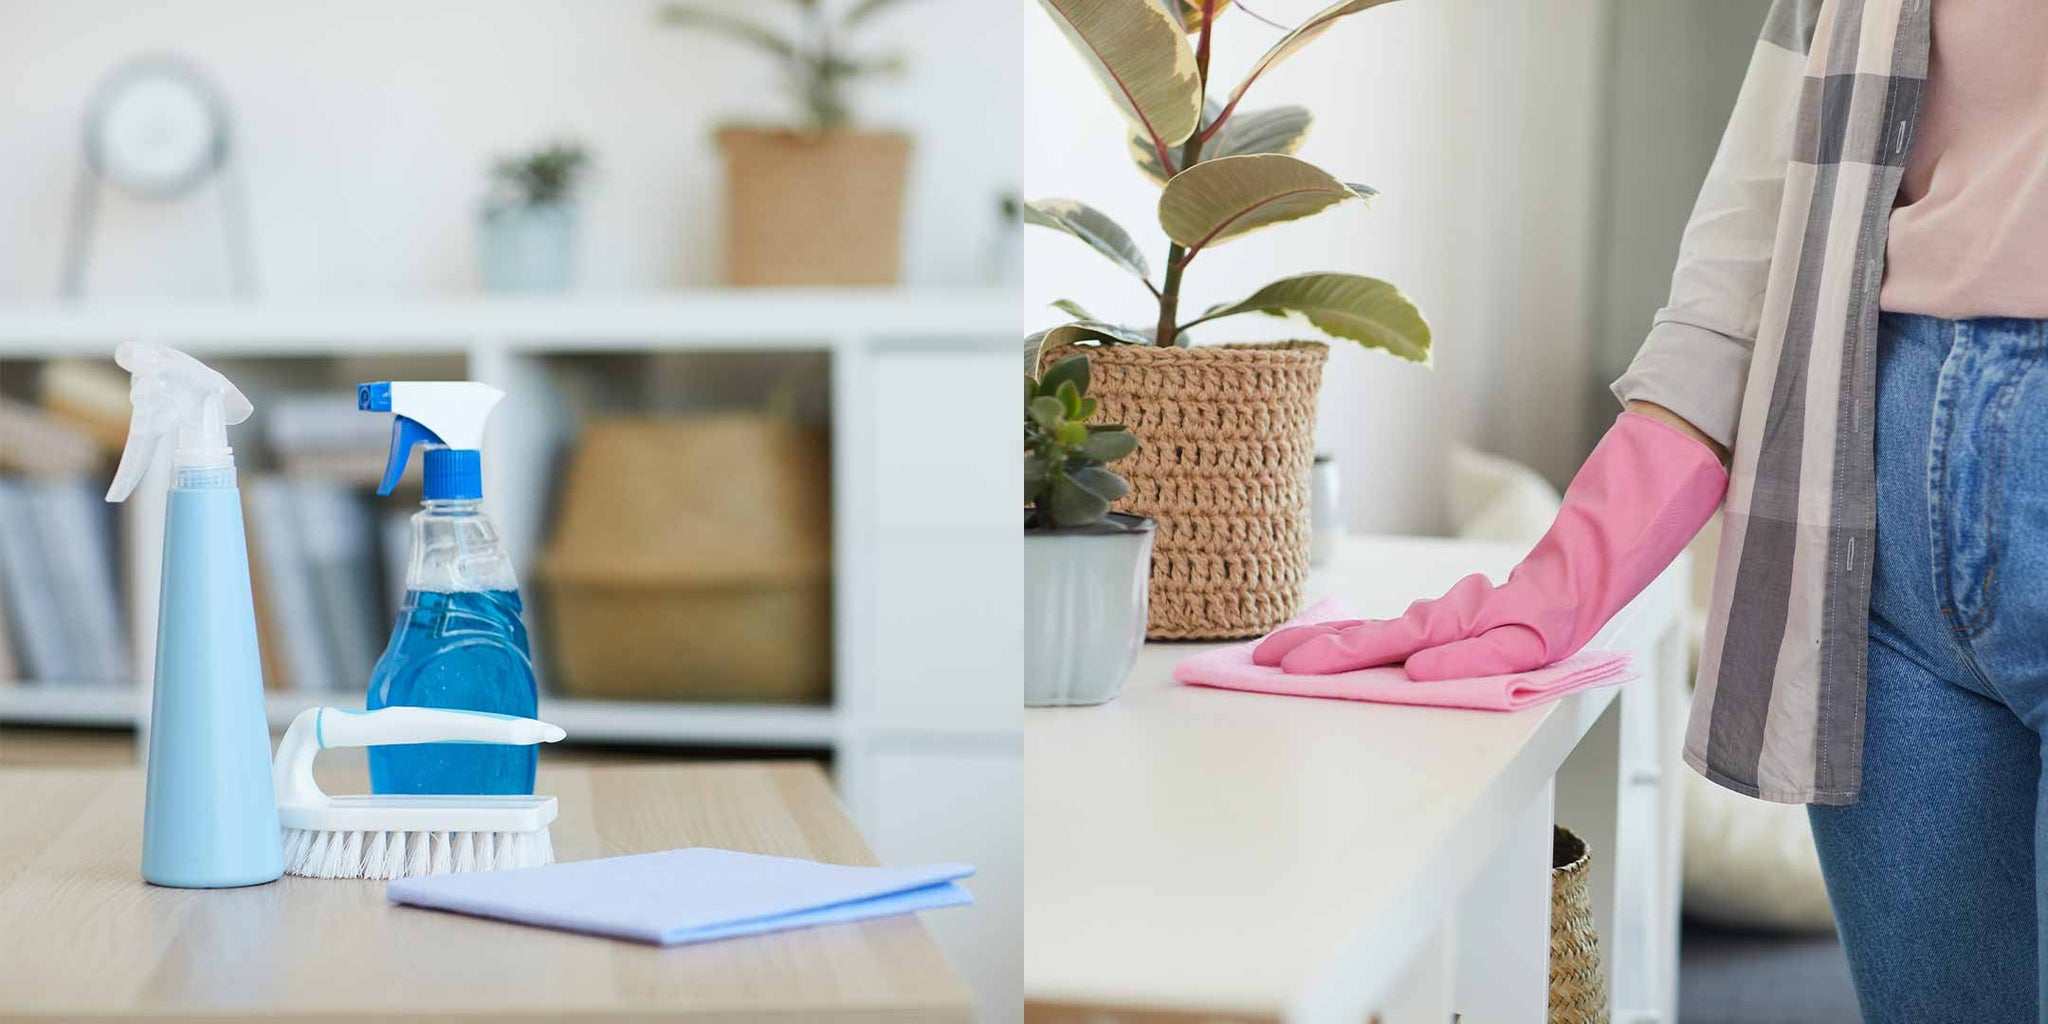 Make Sure You Can Disinfect Your Furniture Properly